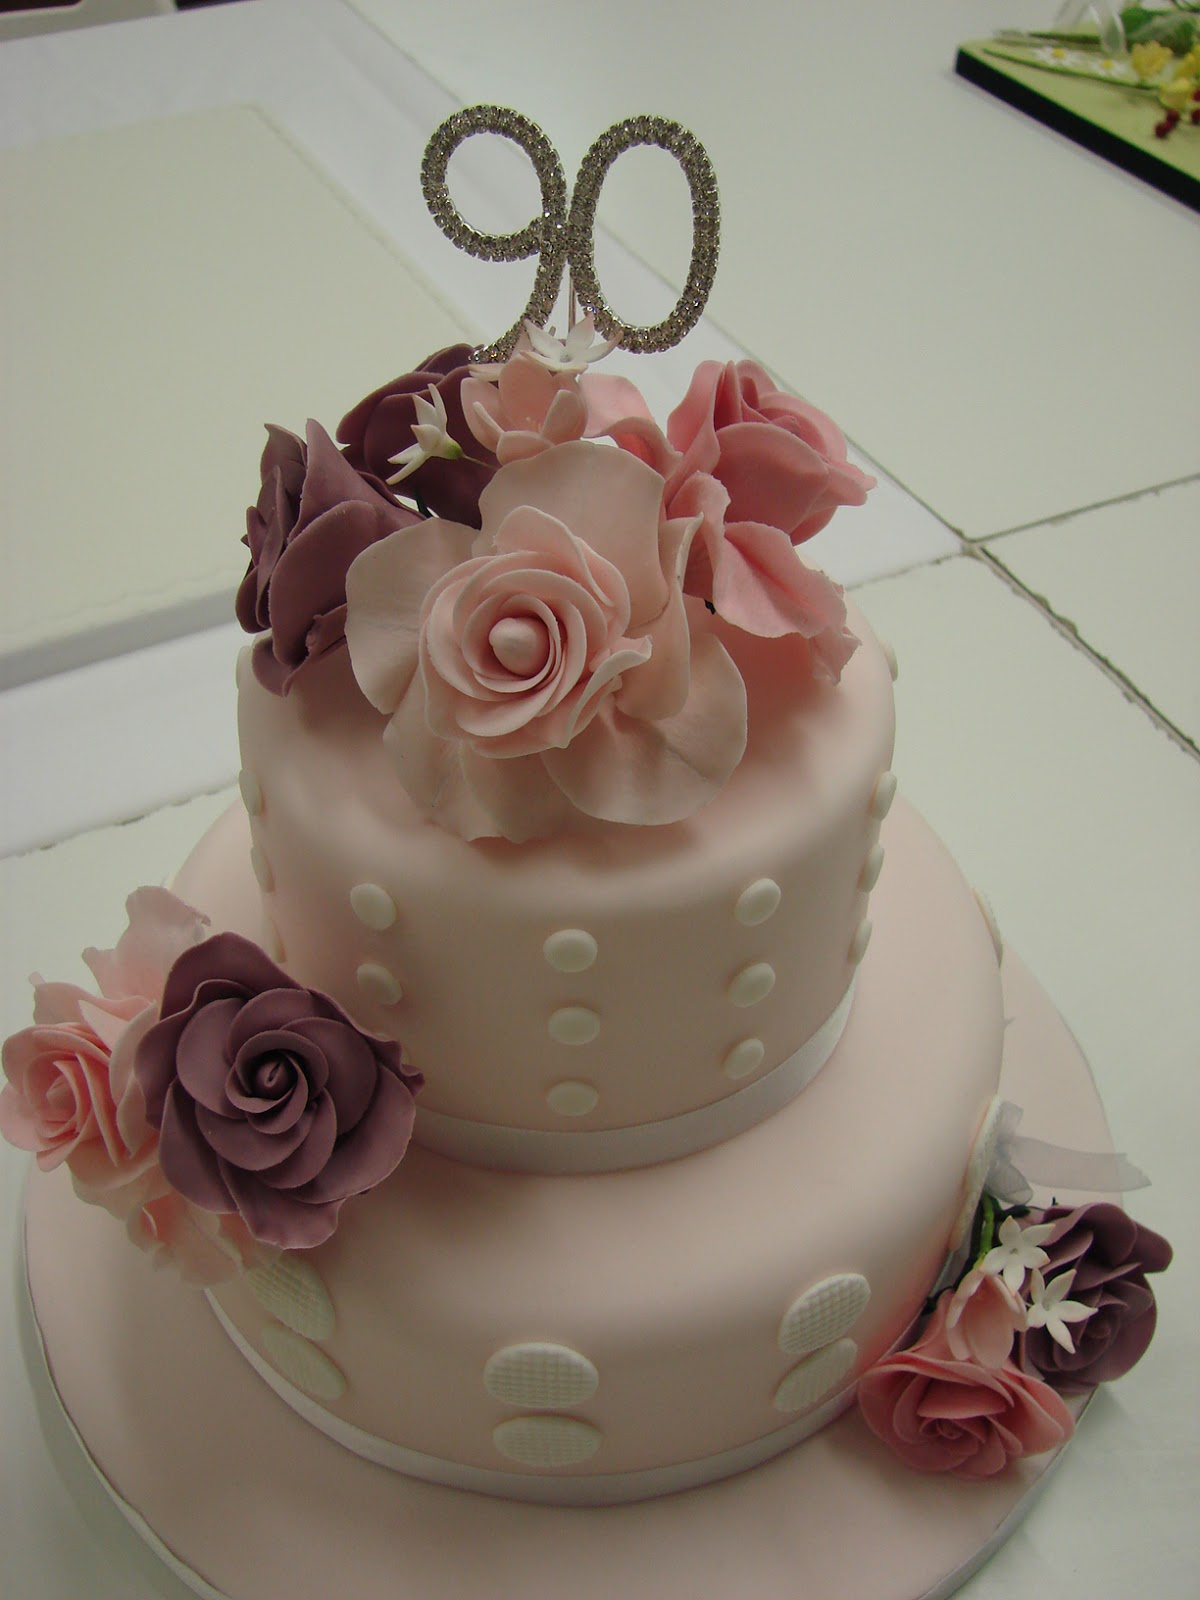 Sweet and Fancy: 90th Birthday cake